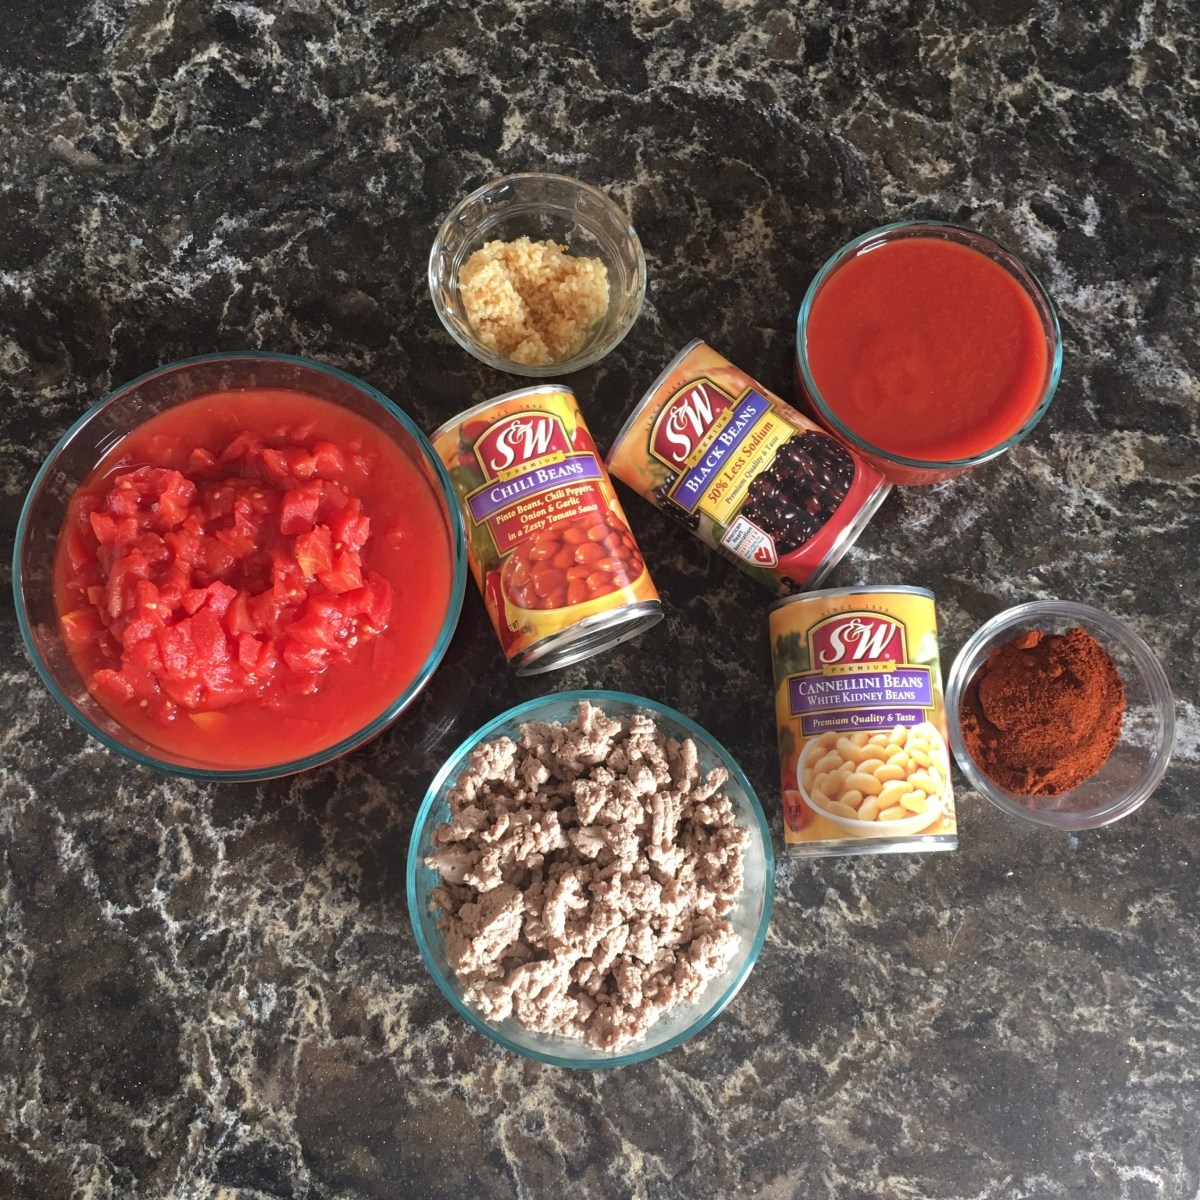 S&W Beans Chili Ingredients